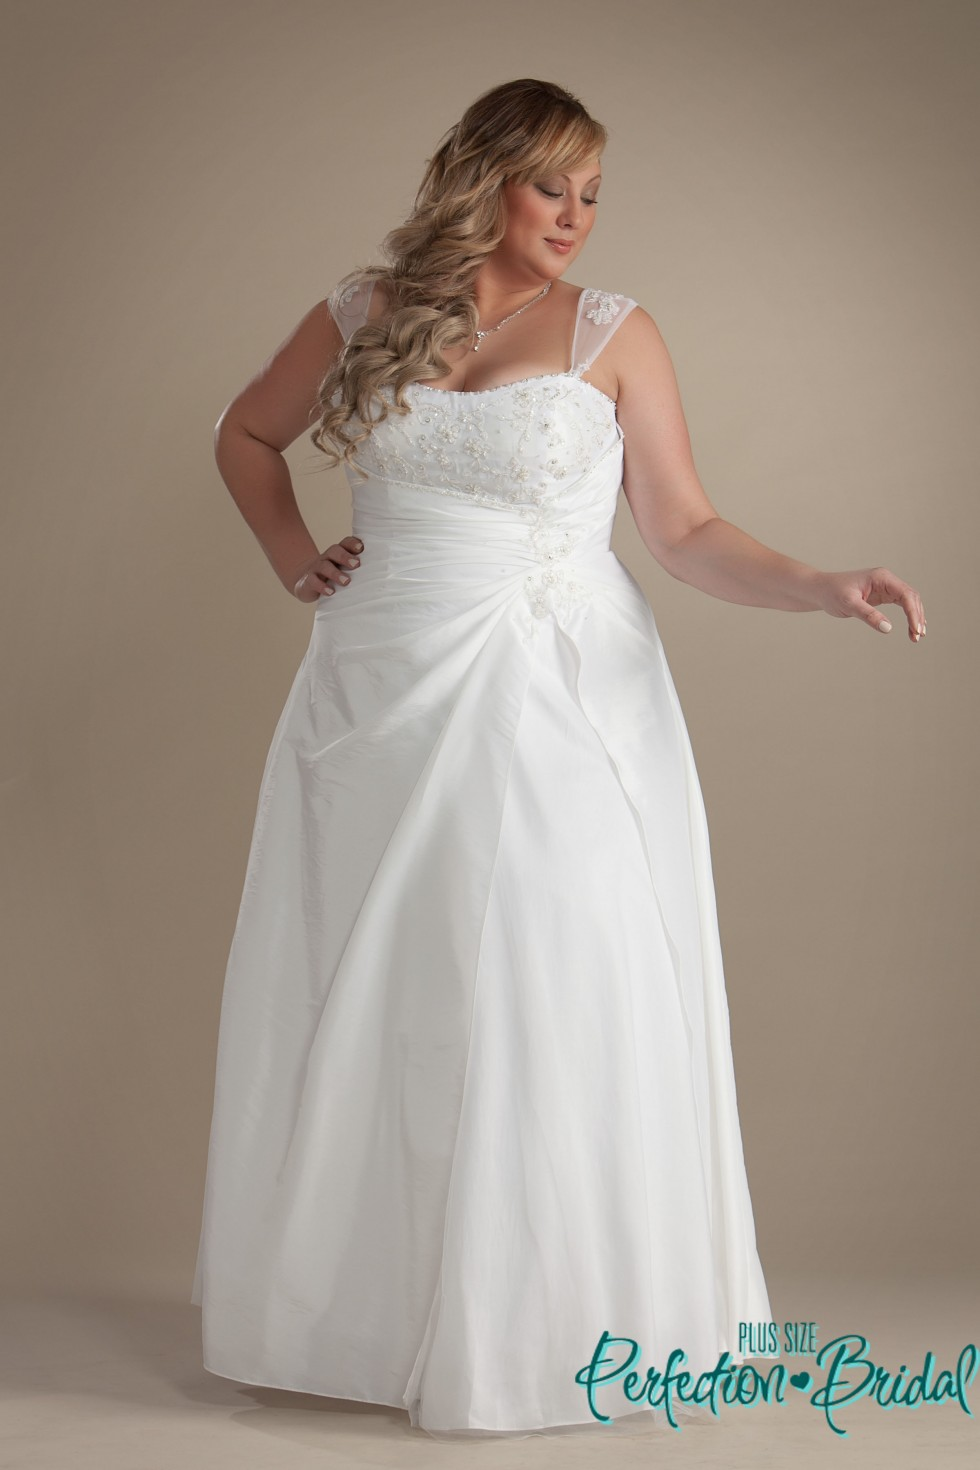 Plus size wedding dresses australia cheap eligent prom for Wedding dress plus size cheap